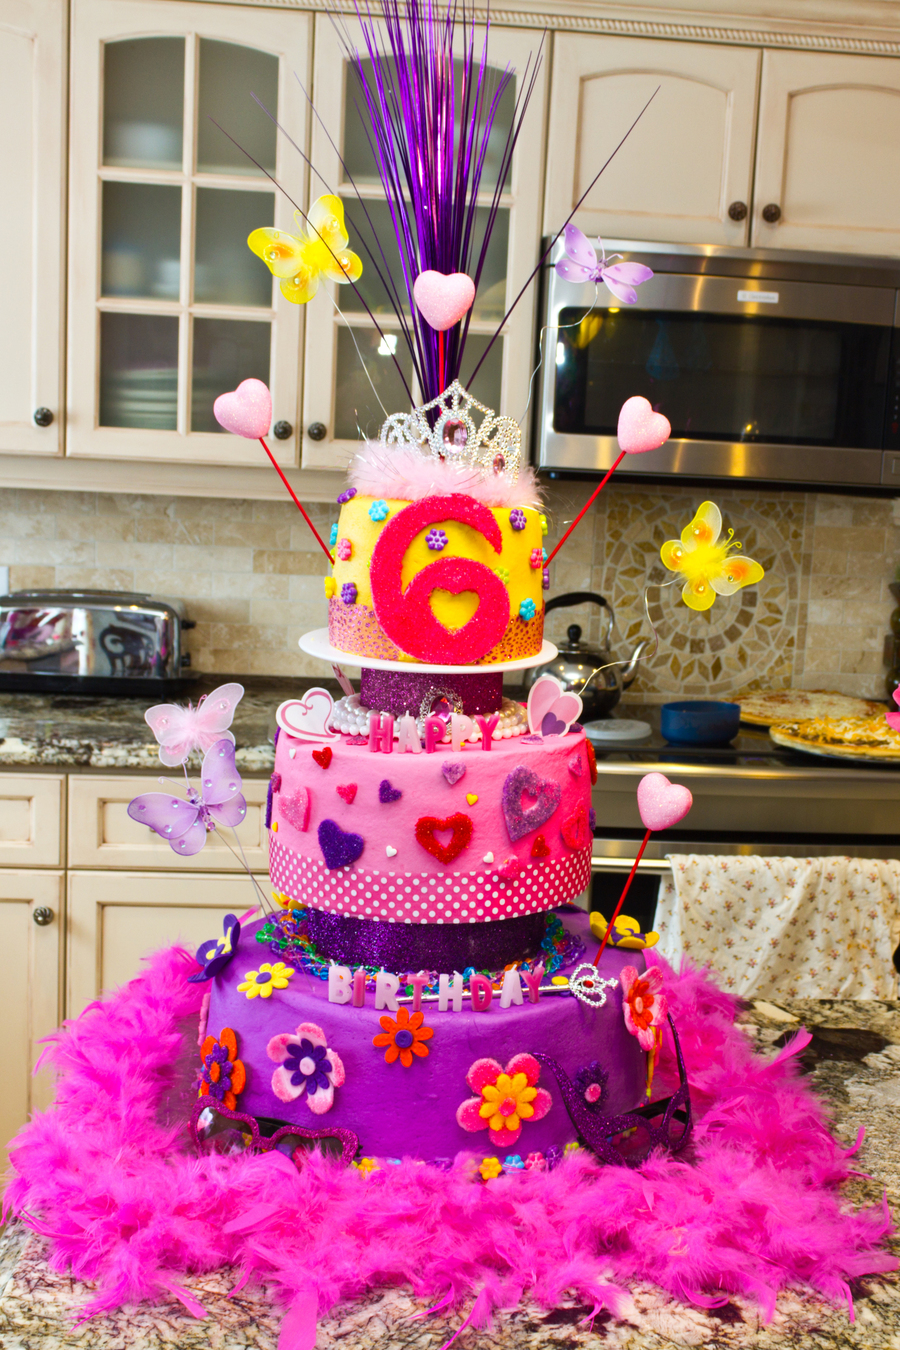 Phenomenal Fancy Nancy Birthday Party Cake Cakecentral Com Funny Birthday Cards Online Barepcheapnameinfo